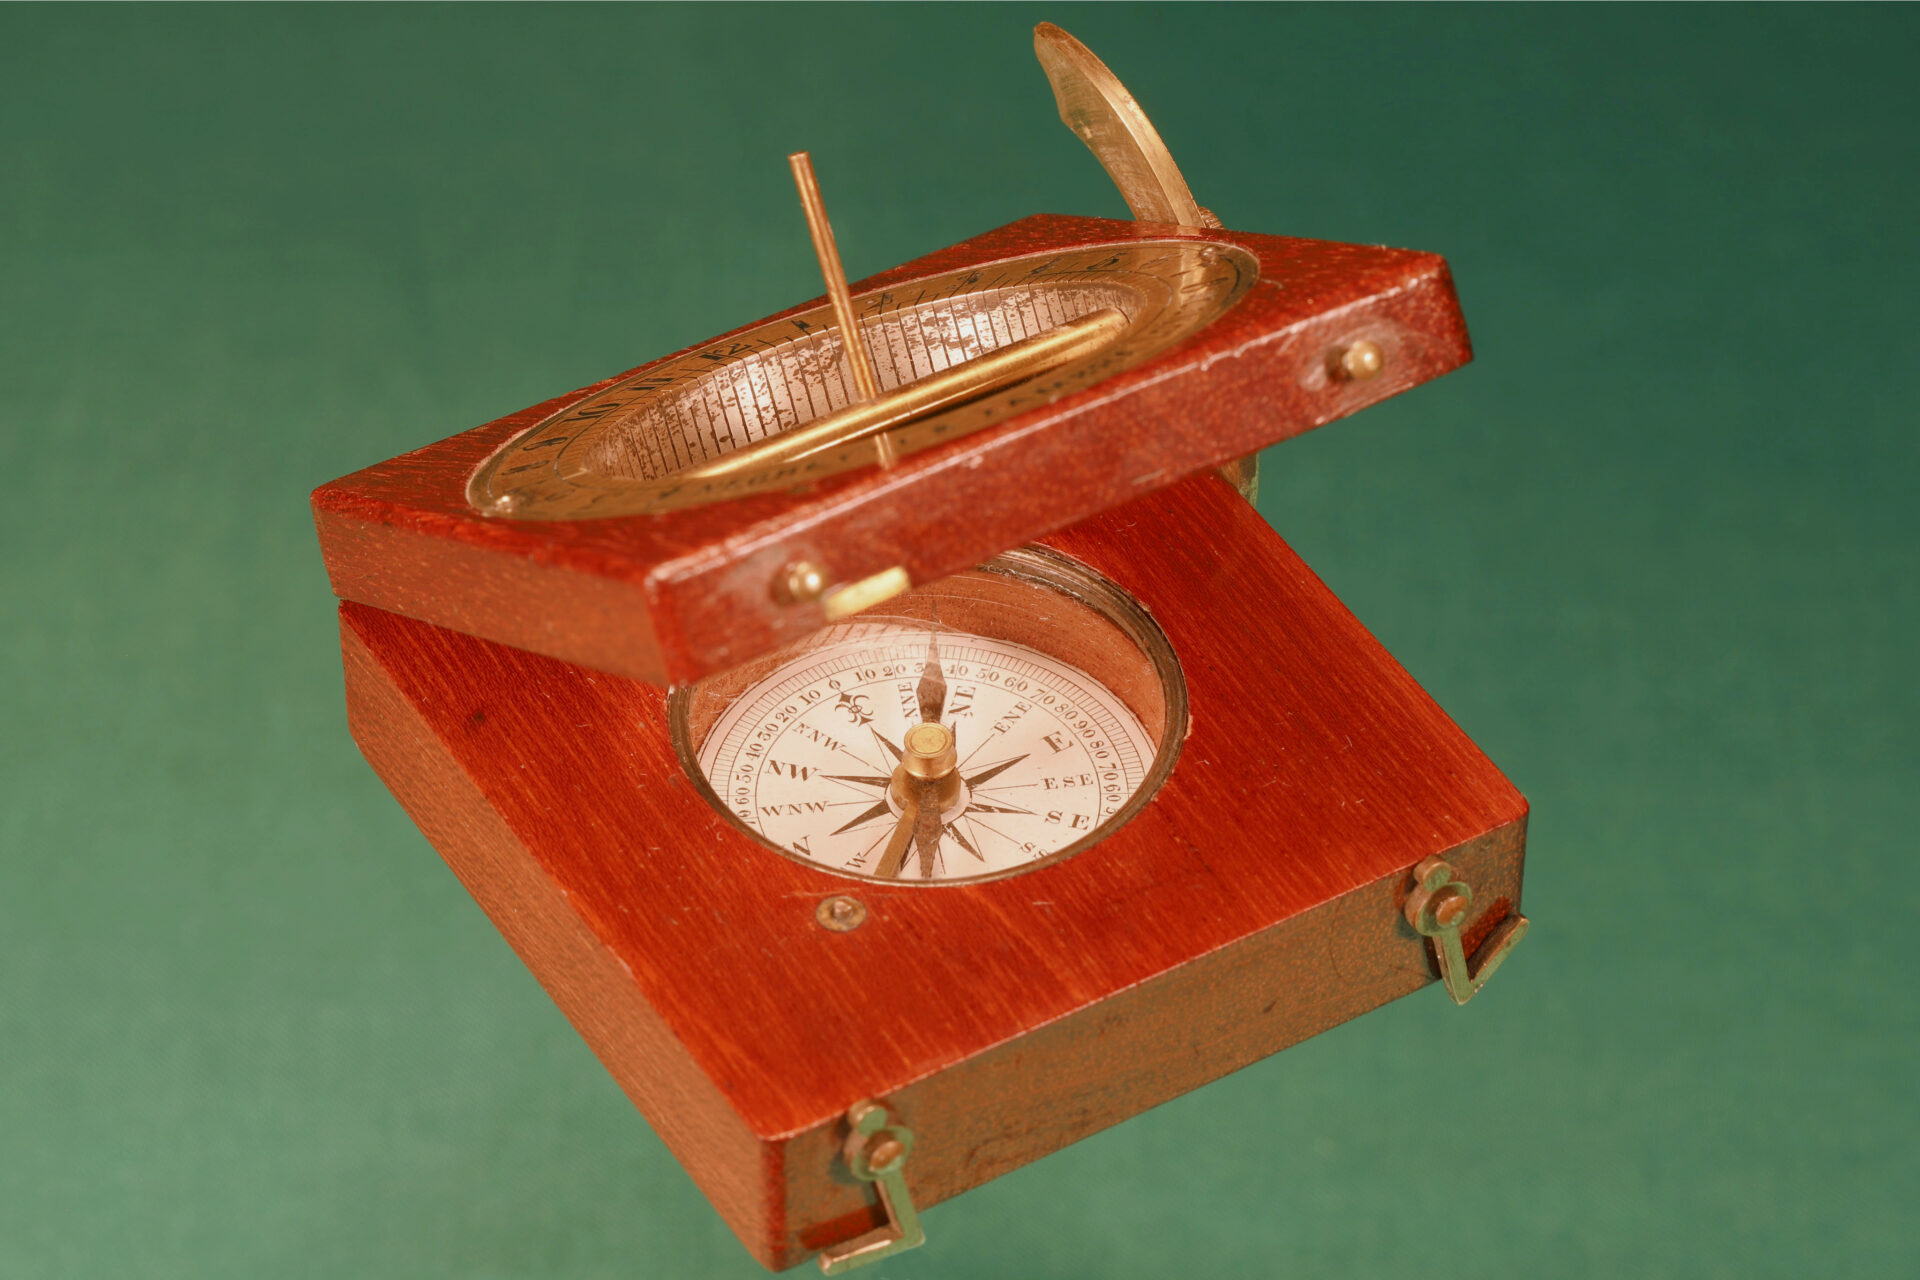 Image of Francis Barker Equinoctial Compass Retailed by Negretti & Zambra c1870 showing open compass from lefthandside